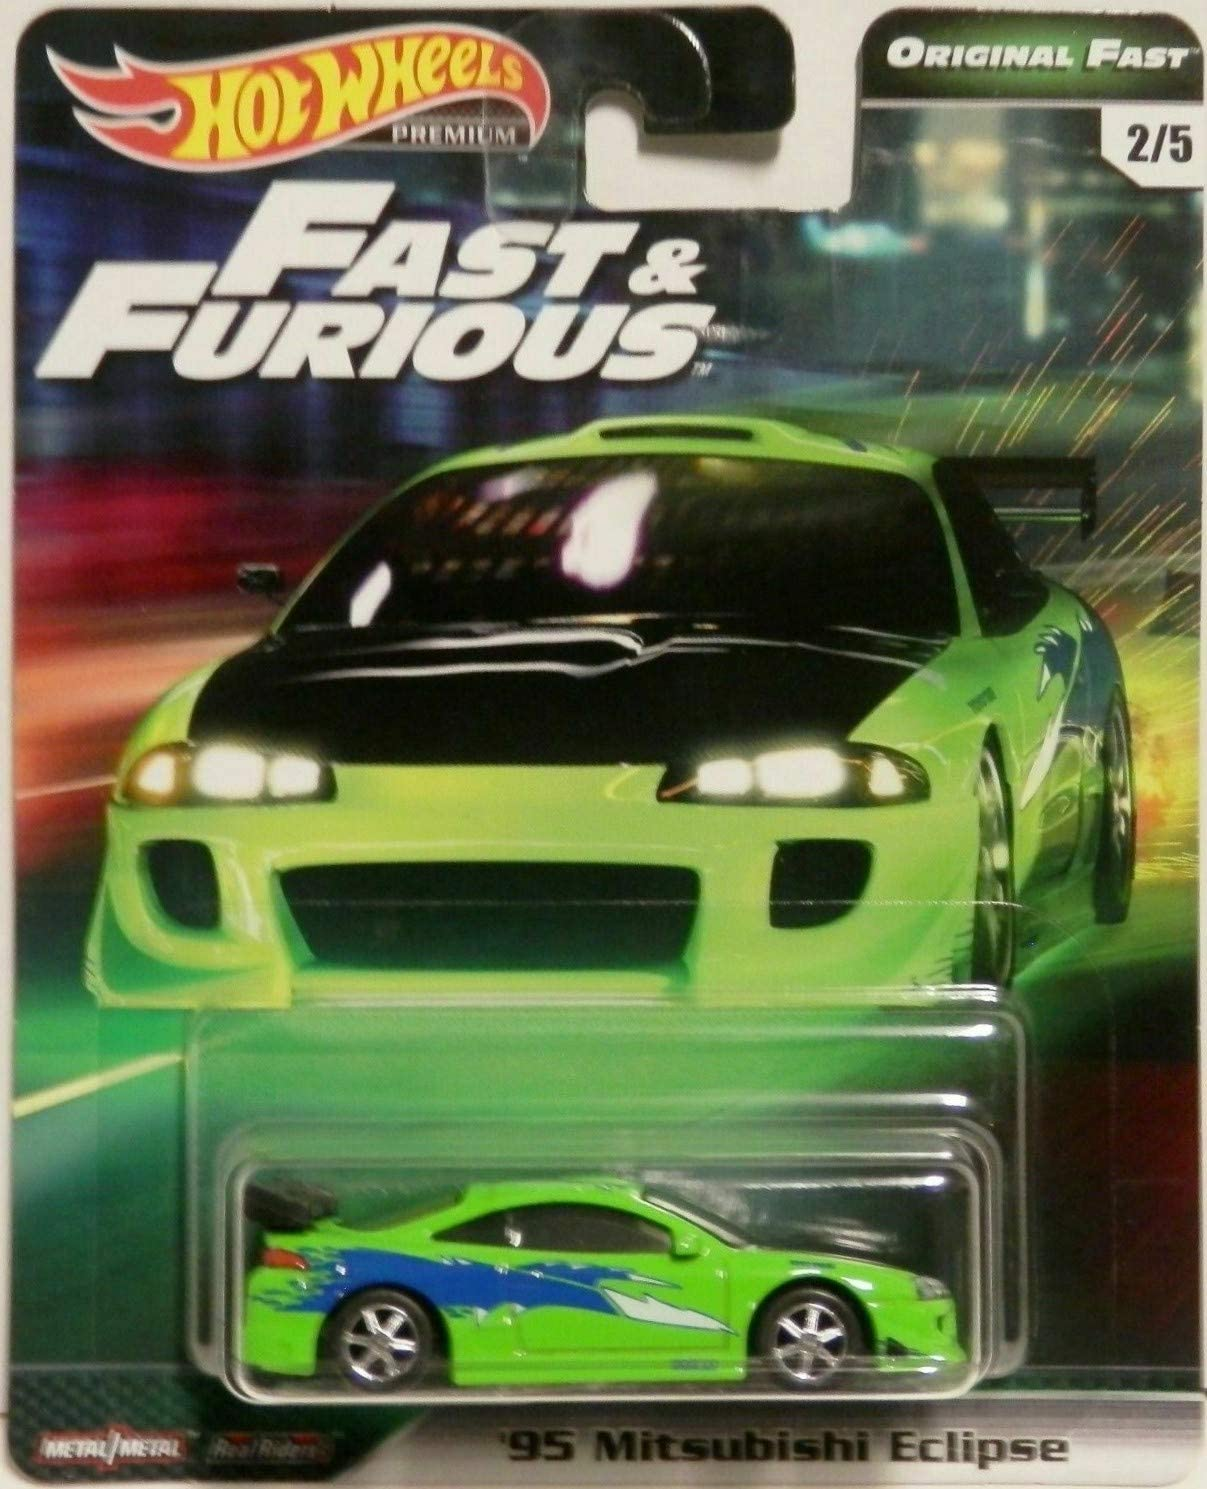 Hot Wheels Compatible '95 Mitsubishi Eclipse Green 2/5 Premium 2019 Real Riders Fast & Furious Series 1:64 Scale Collectible Die Cast Model Car